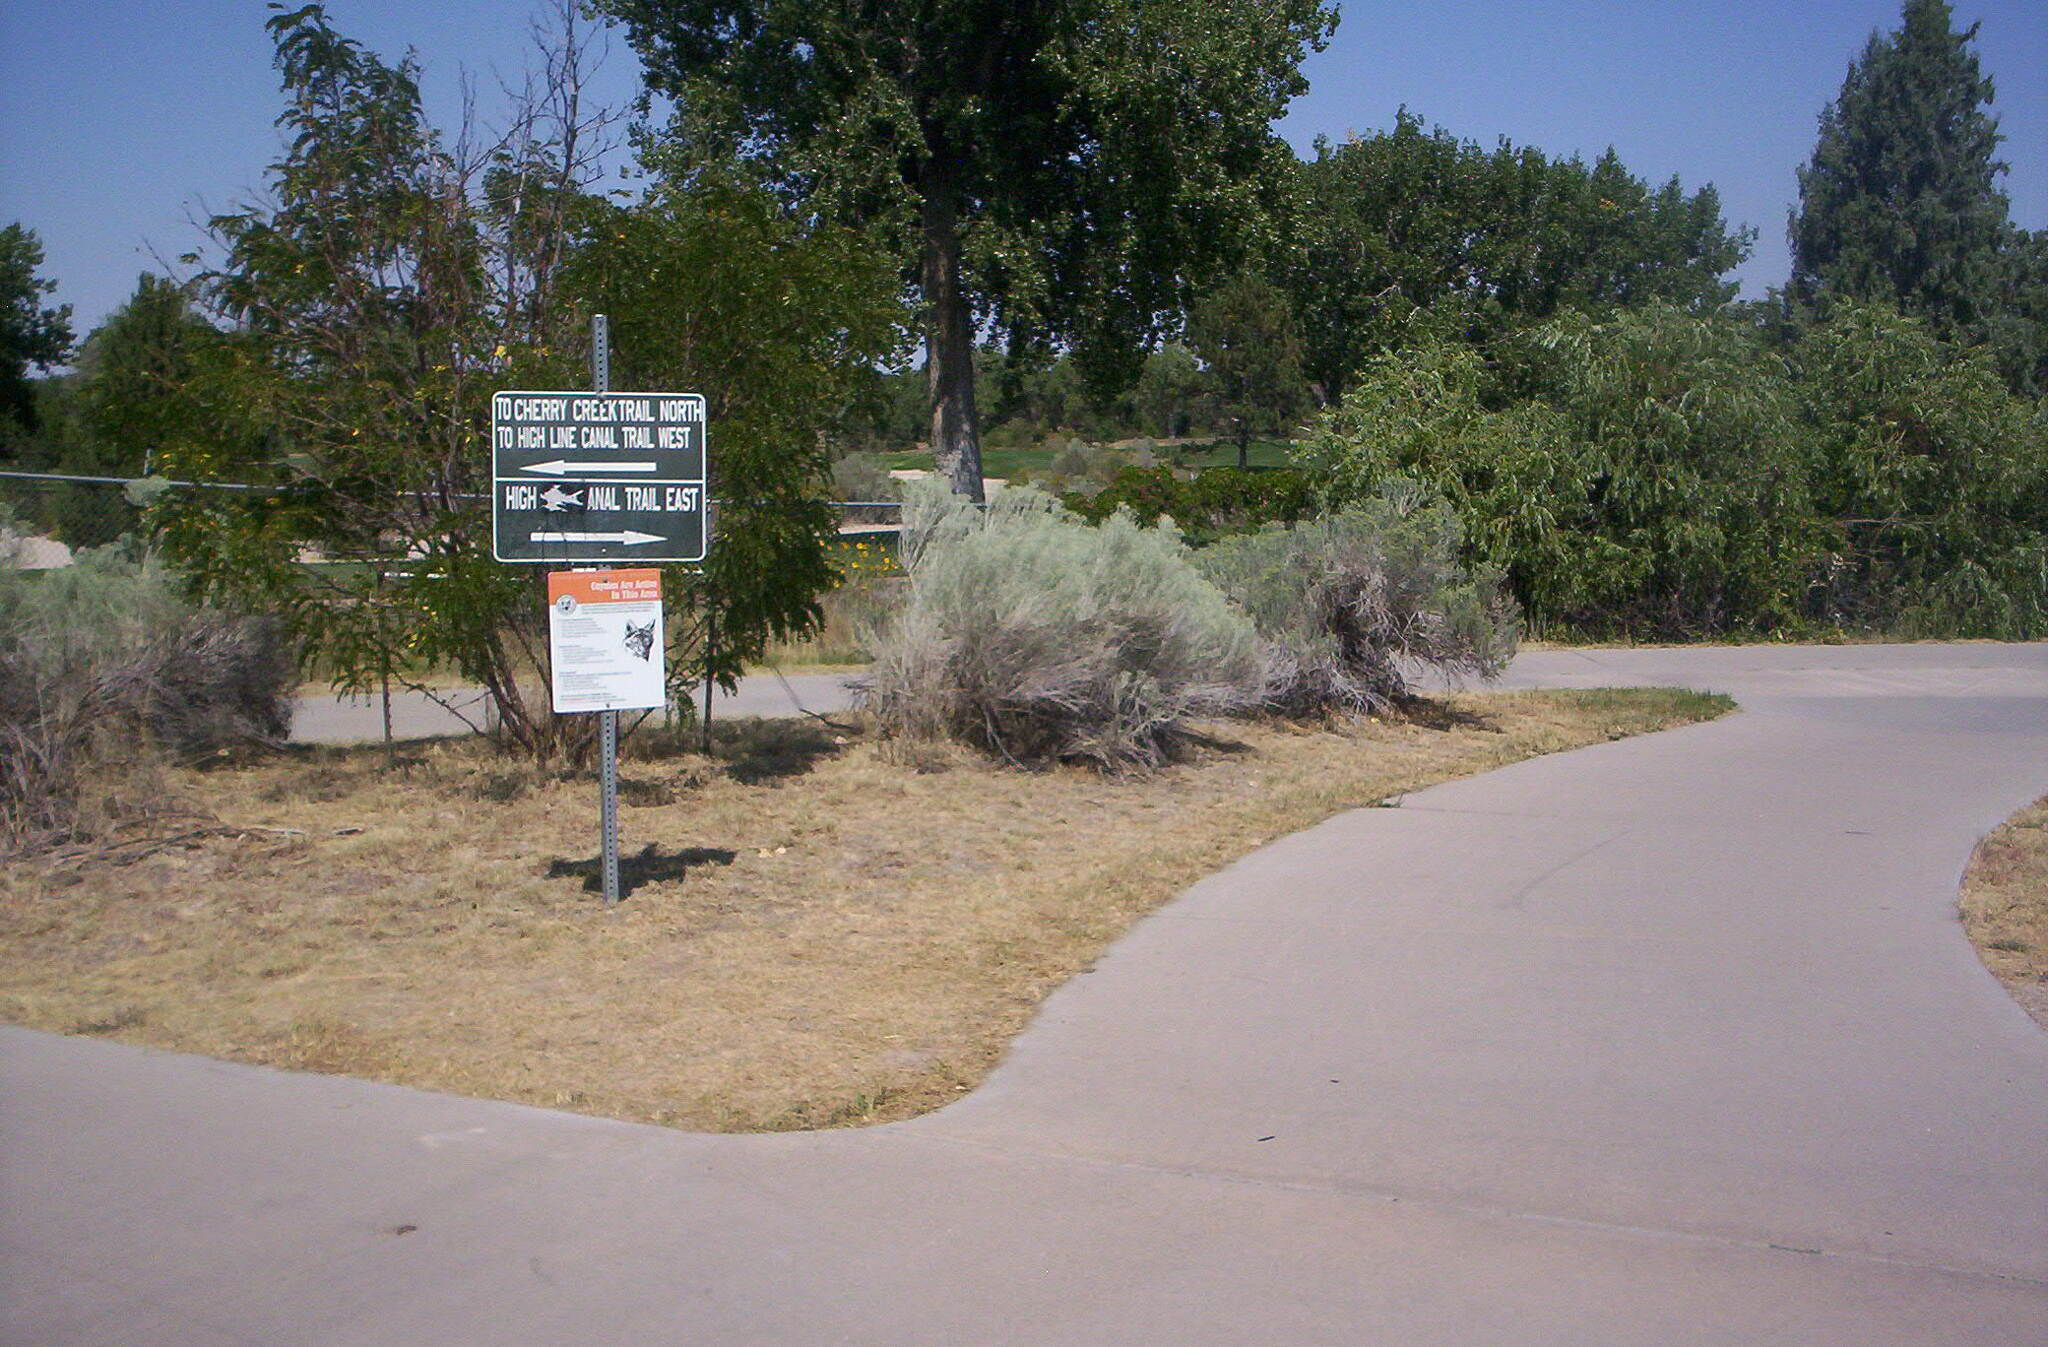 Cherry Creek Regional Trail Merge Intersection with High Line Canal trail East.